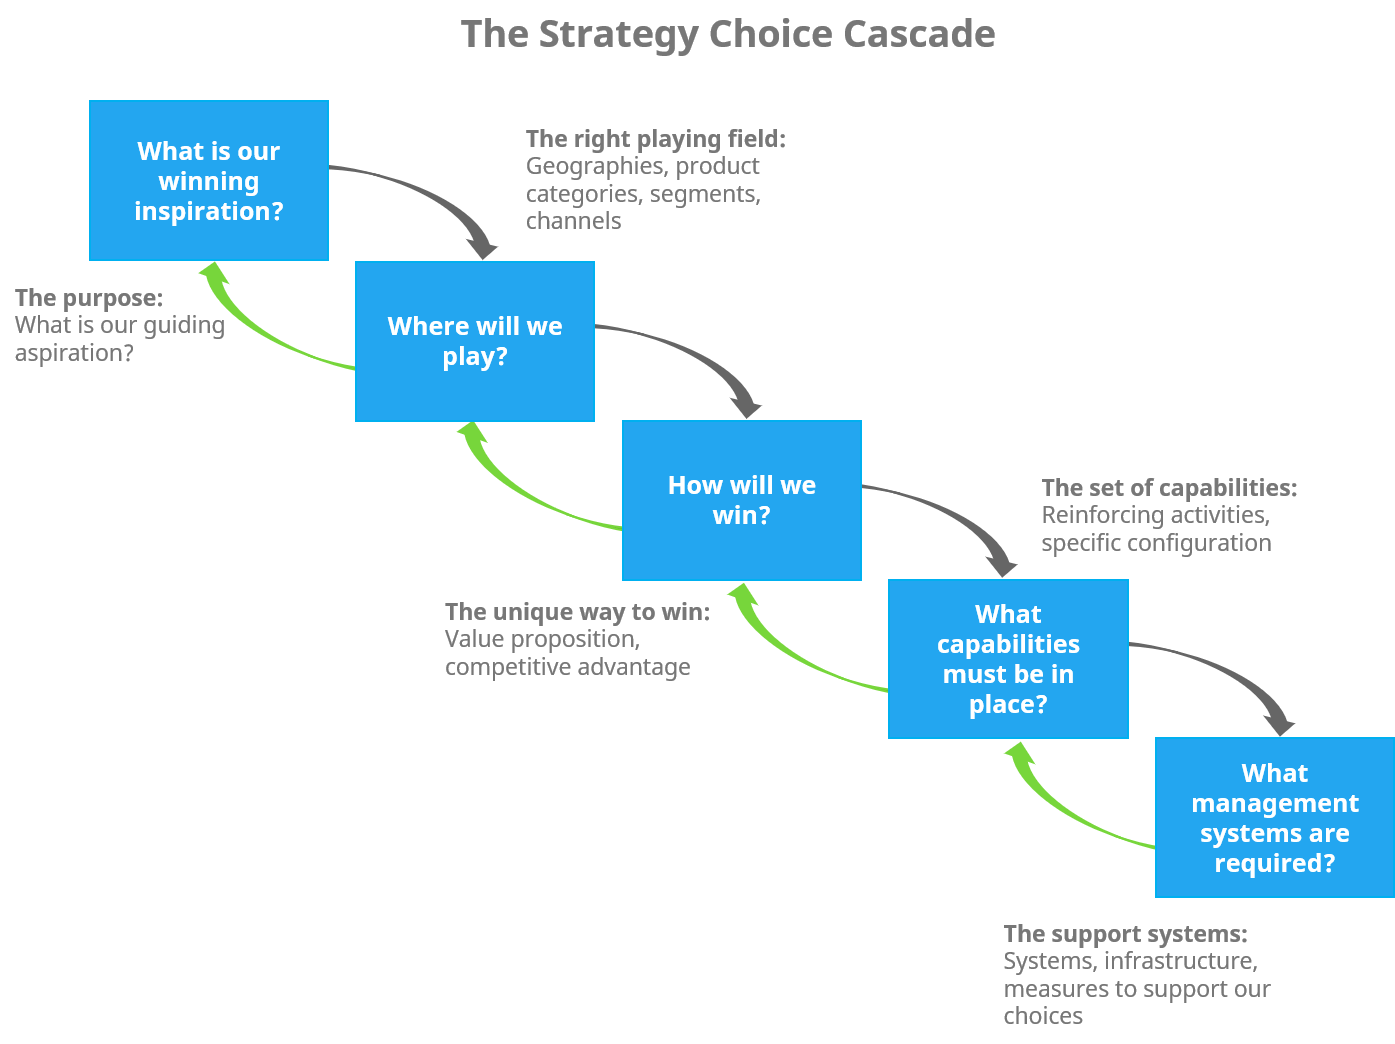 The strategy choice cascade